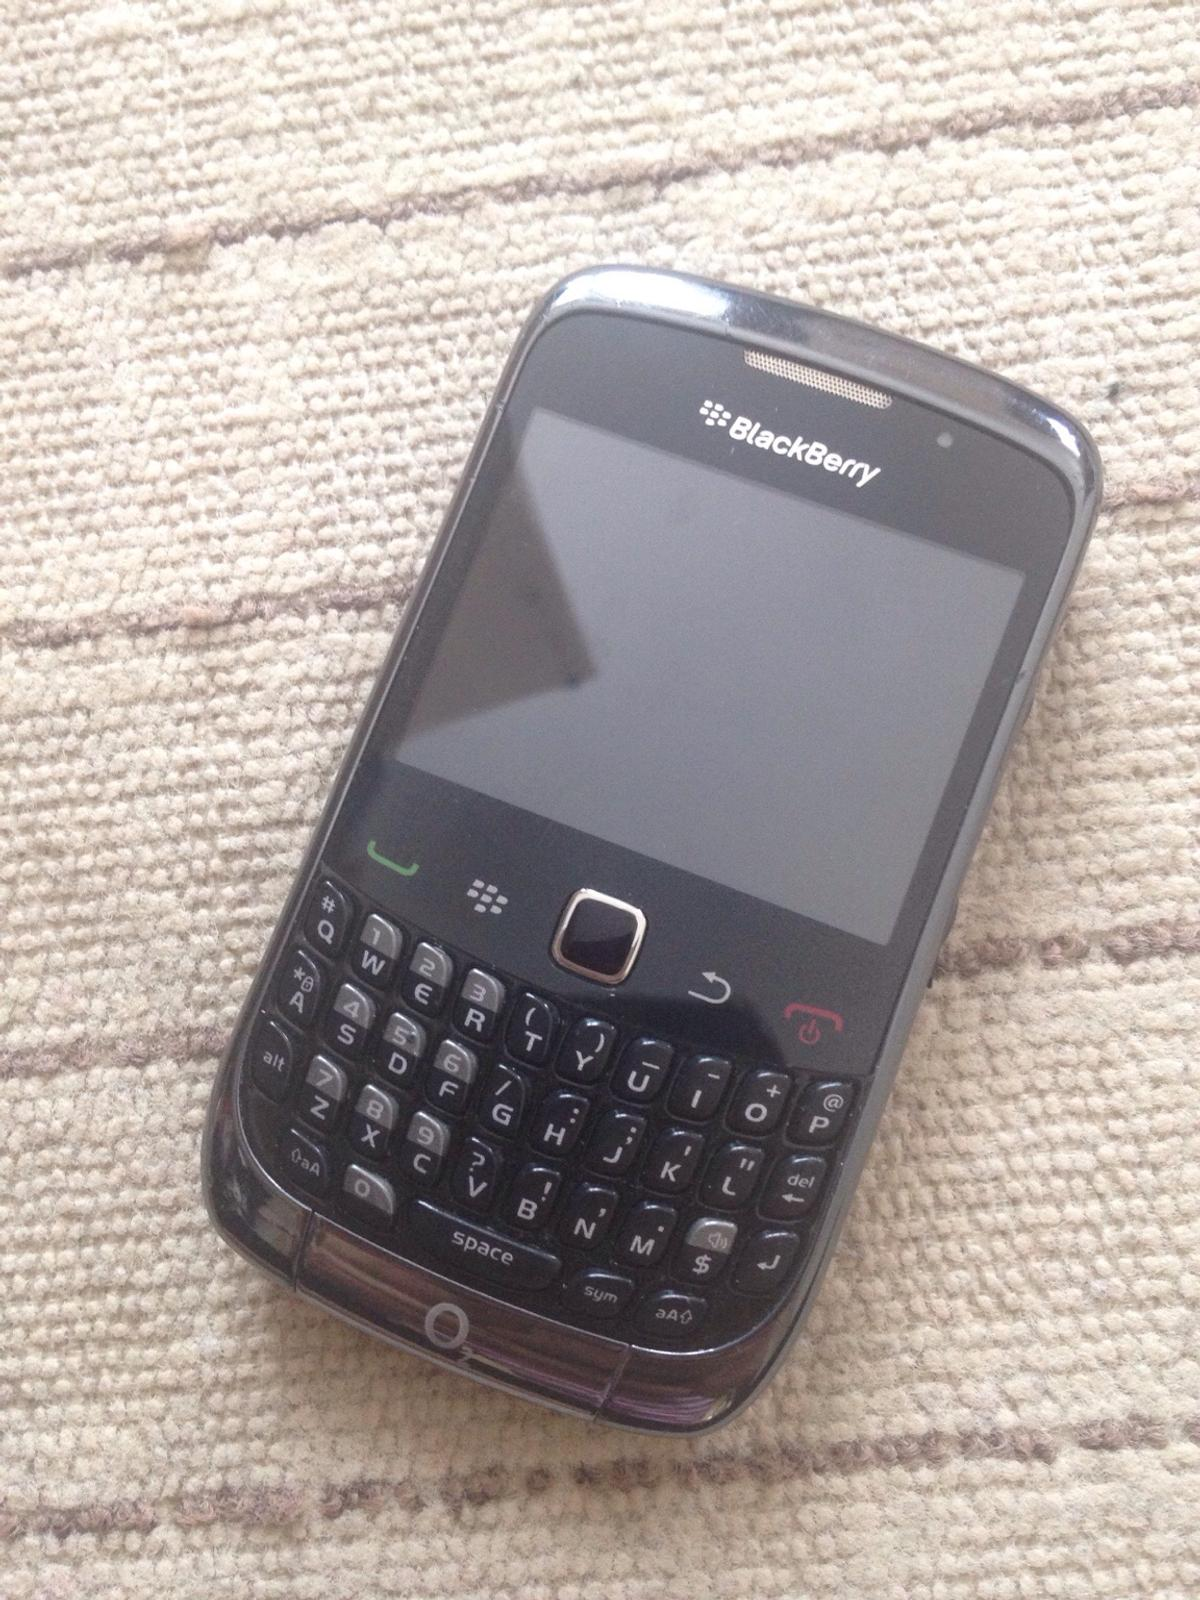 Unlocked blackberry curve 9300 with cases